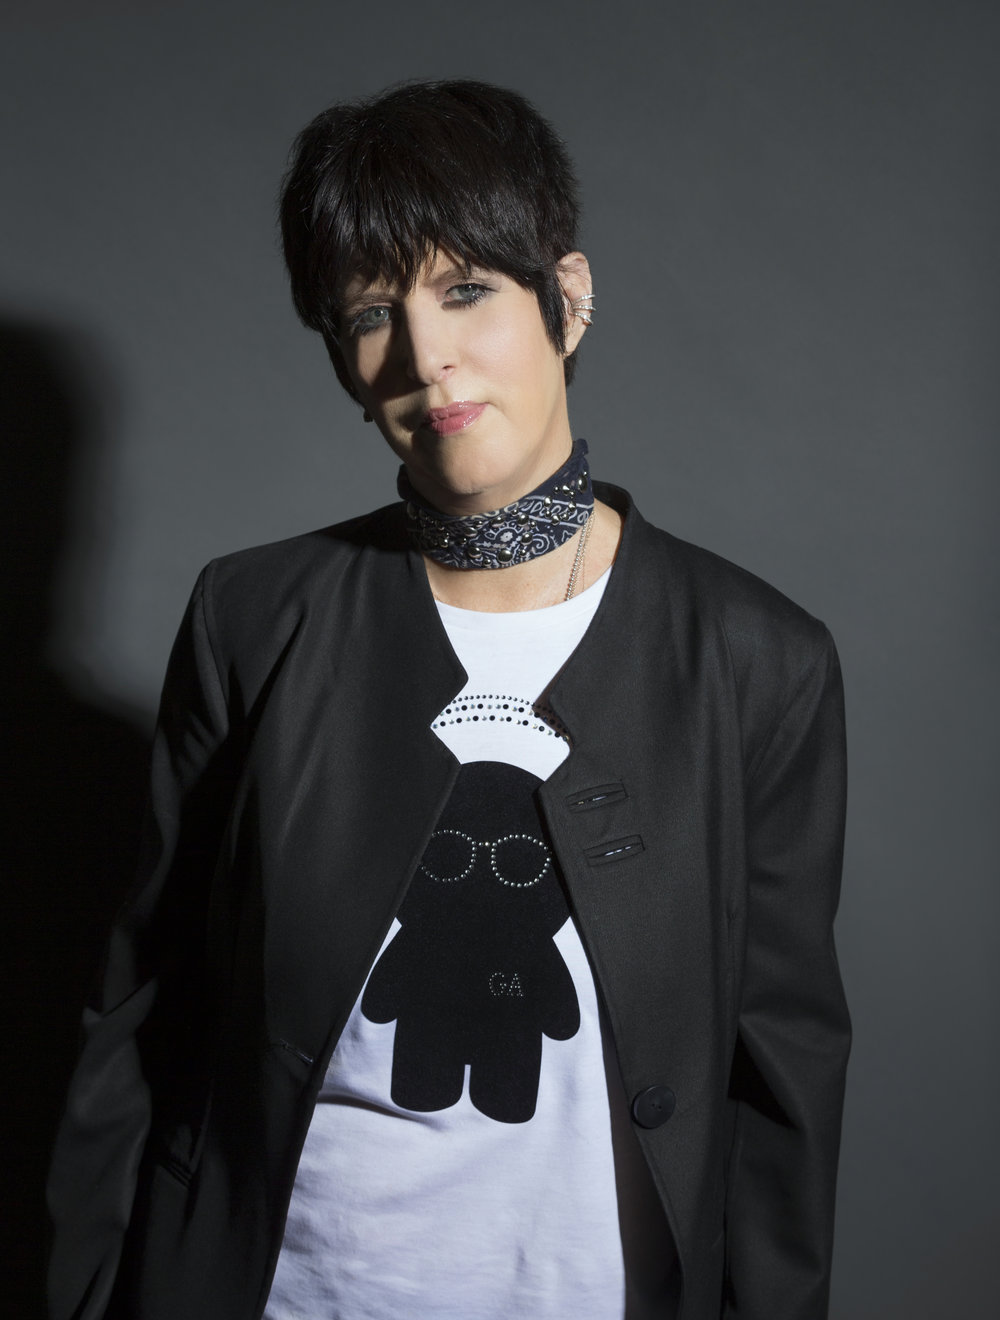 Diane-Warren-photo-credit-by-Rochelle-Brodin_OCH5496.jpg